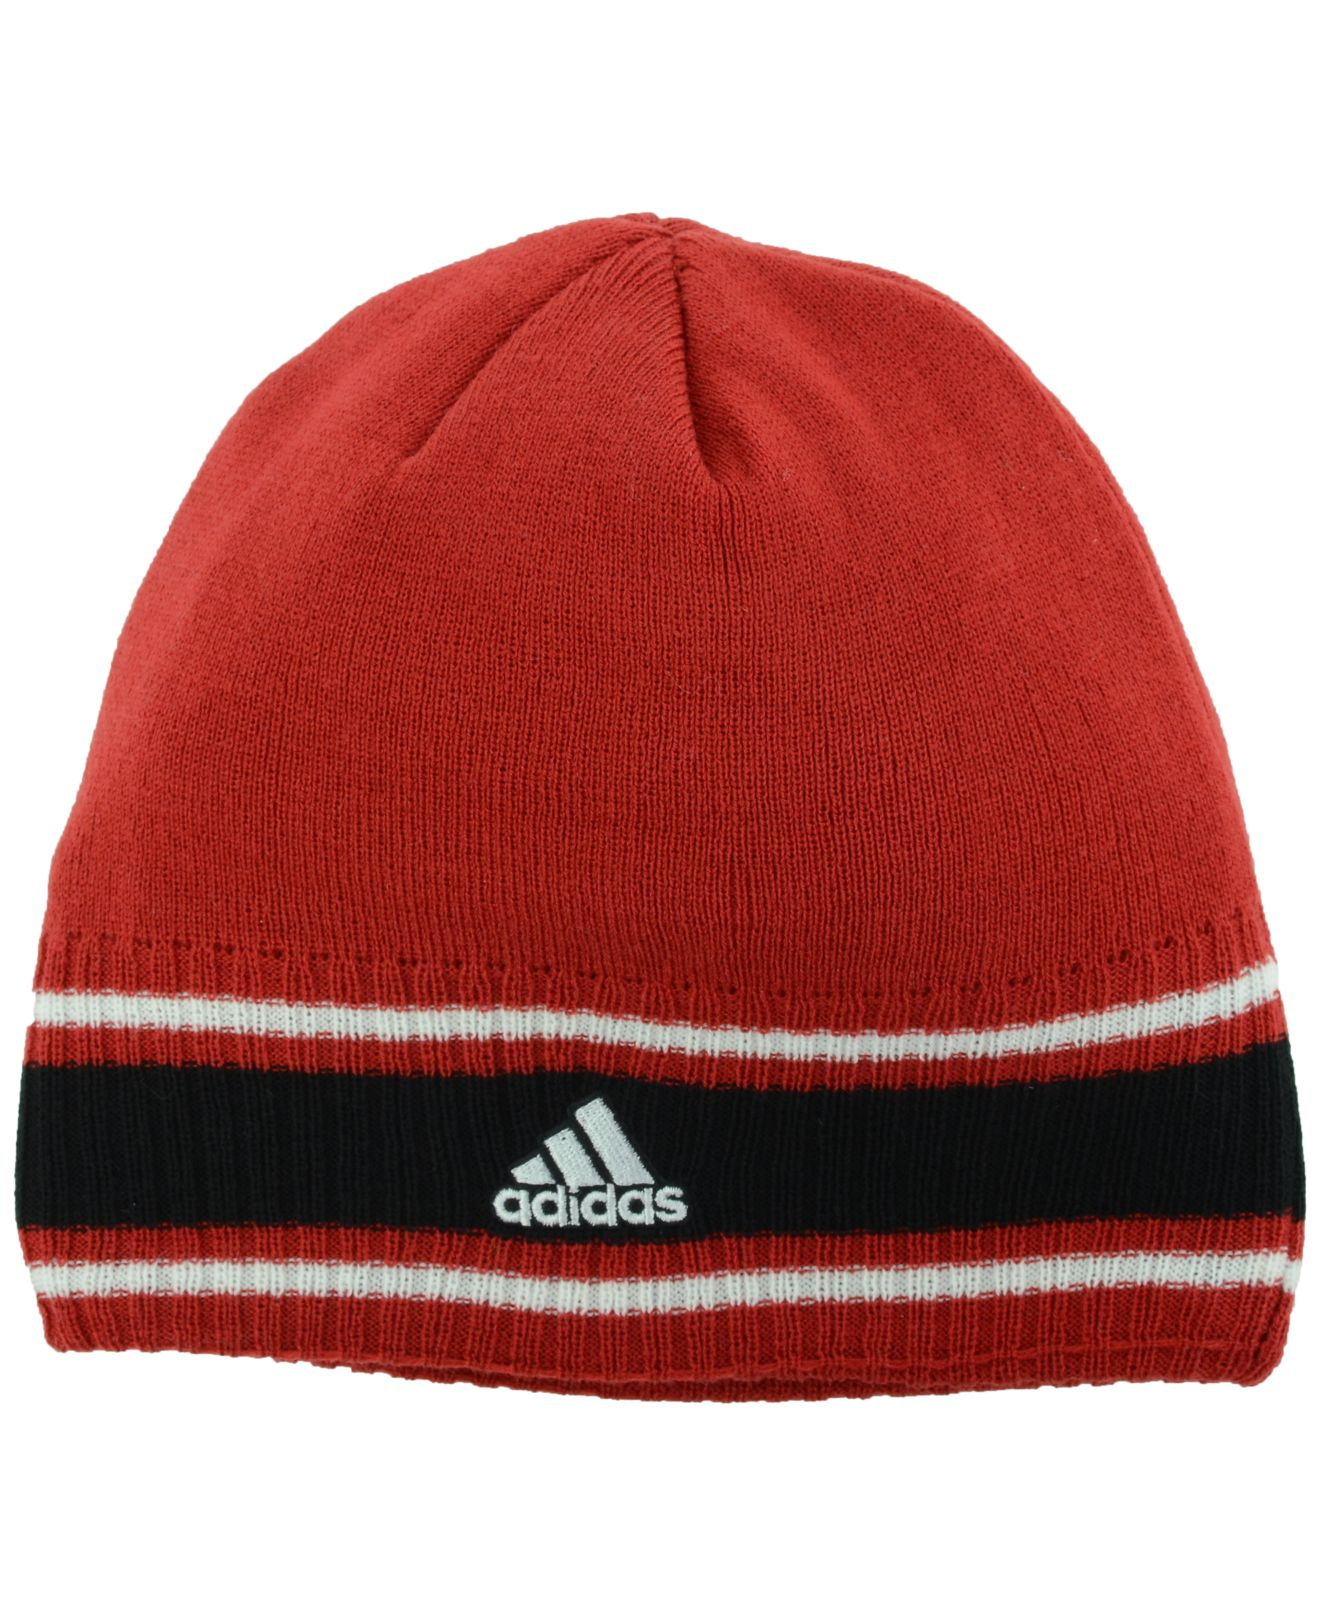 d45c459dfd1 Lyst - Adidas Louisville Cardinals Coaches Cuffless Knit Hat in Red ...